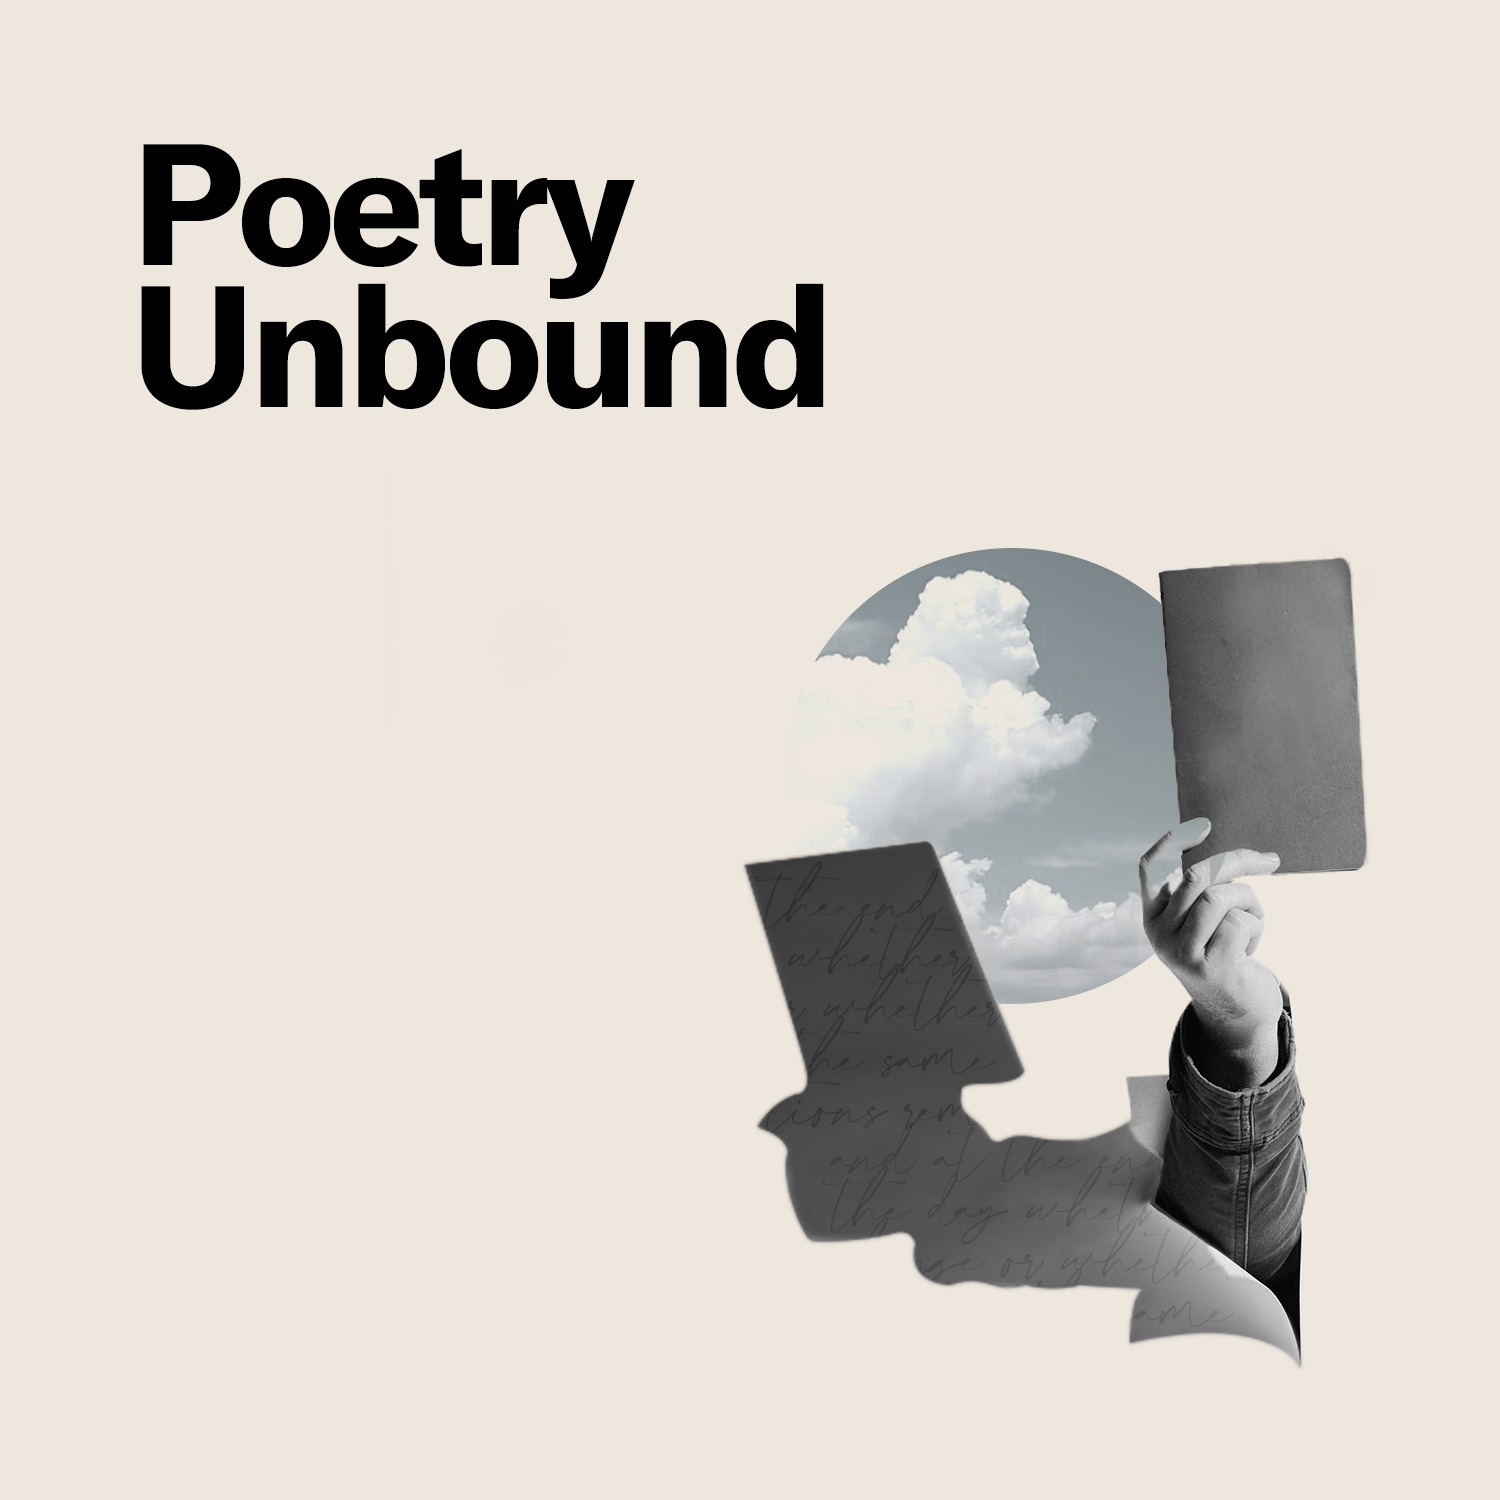 Introducing 'Poetry Unbound'